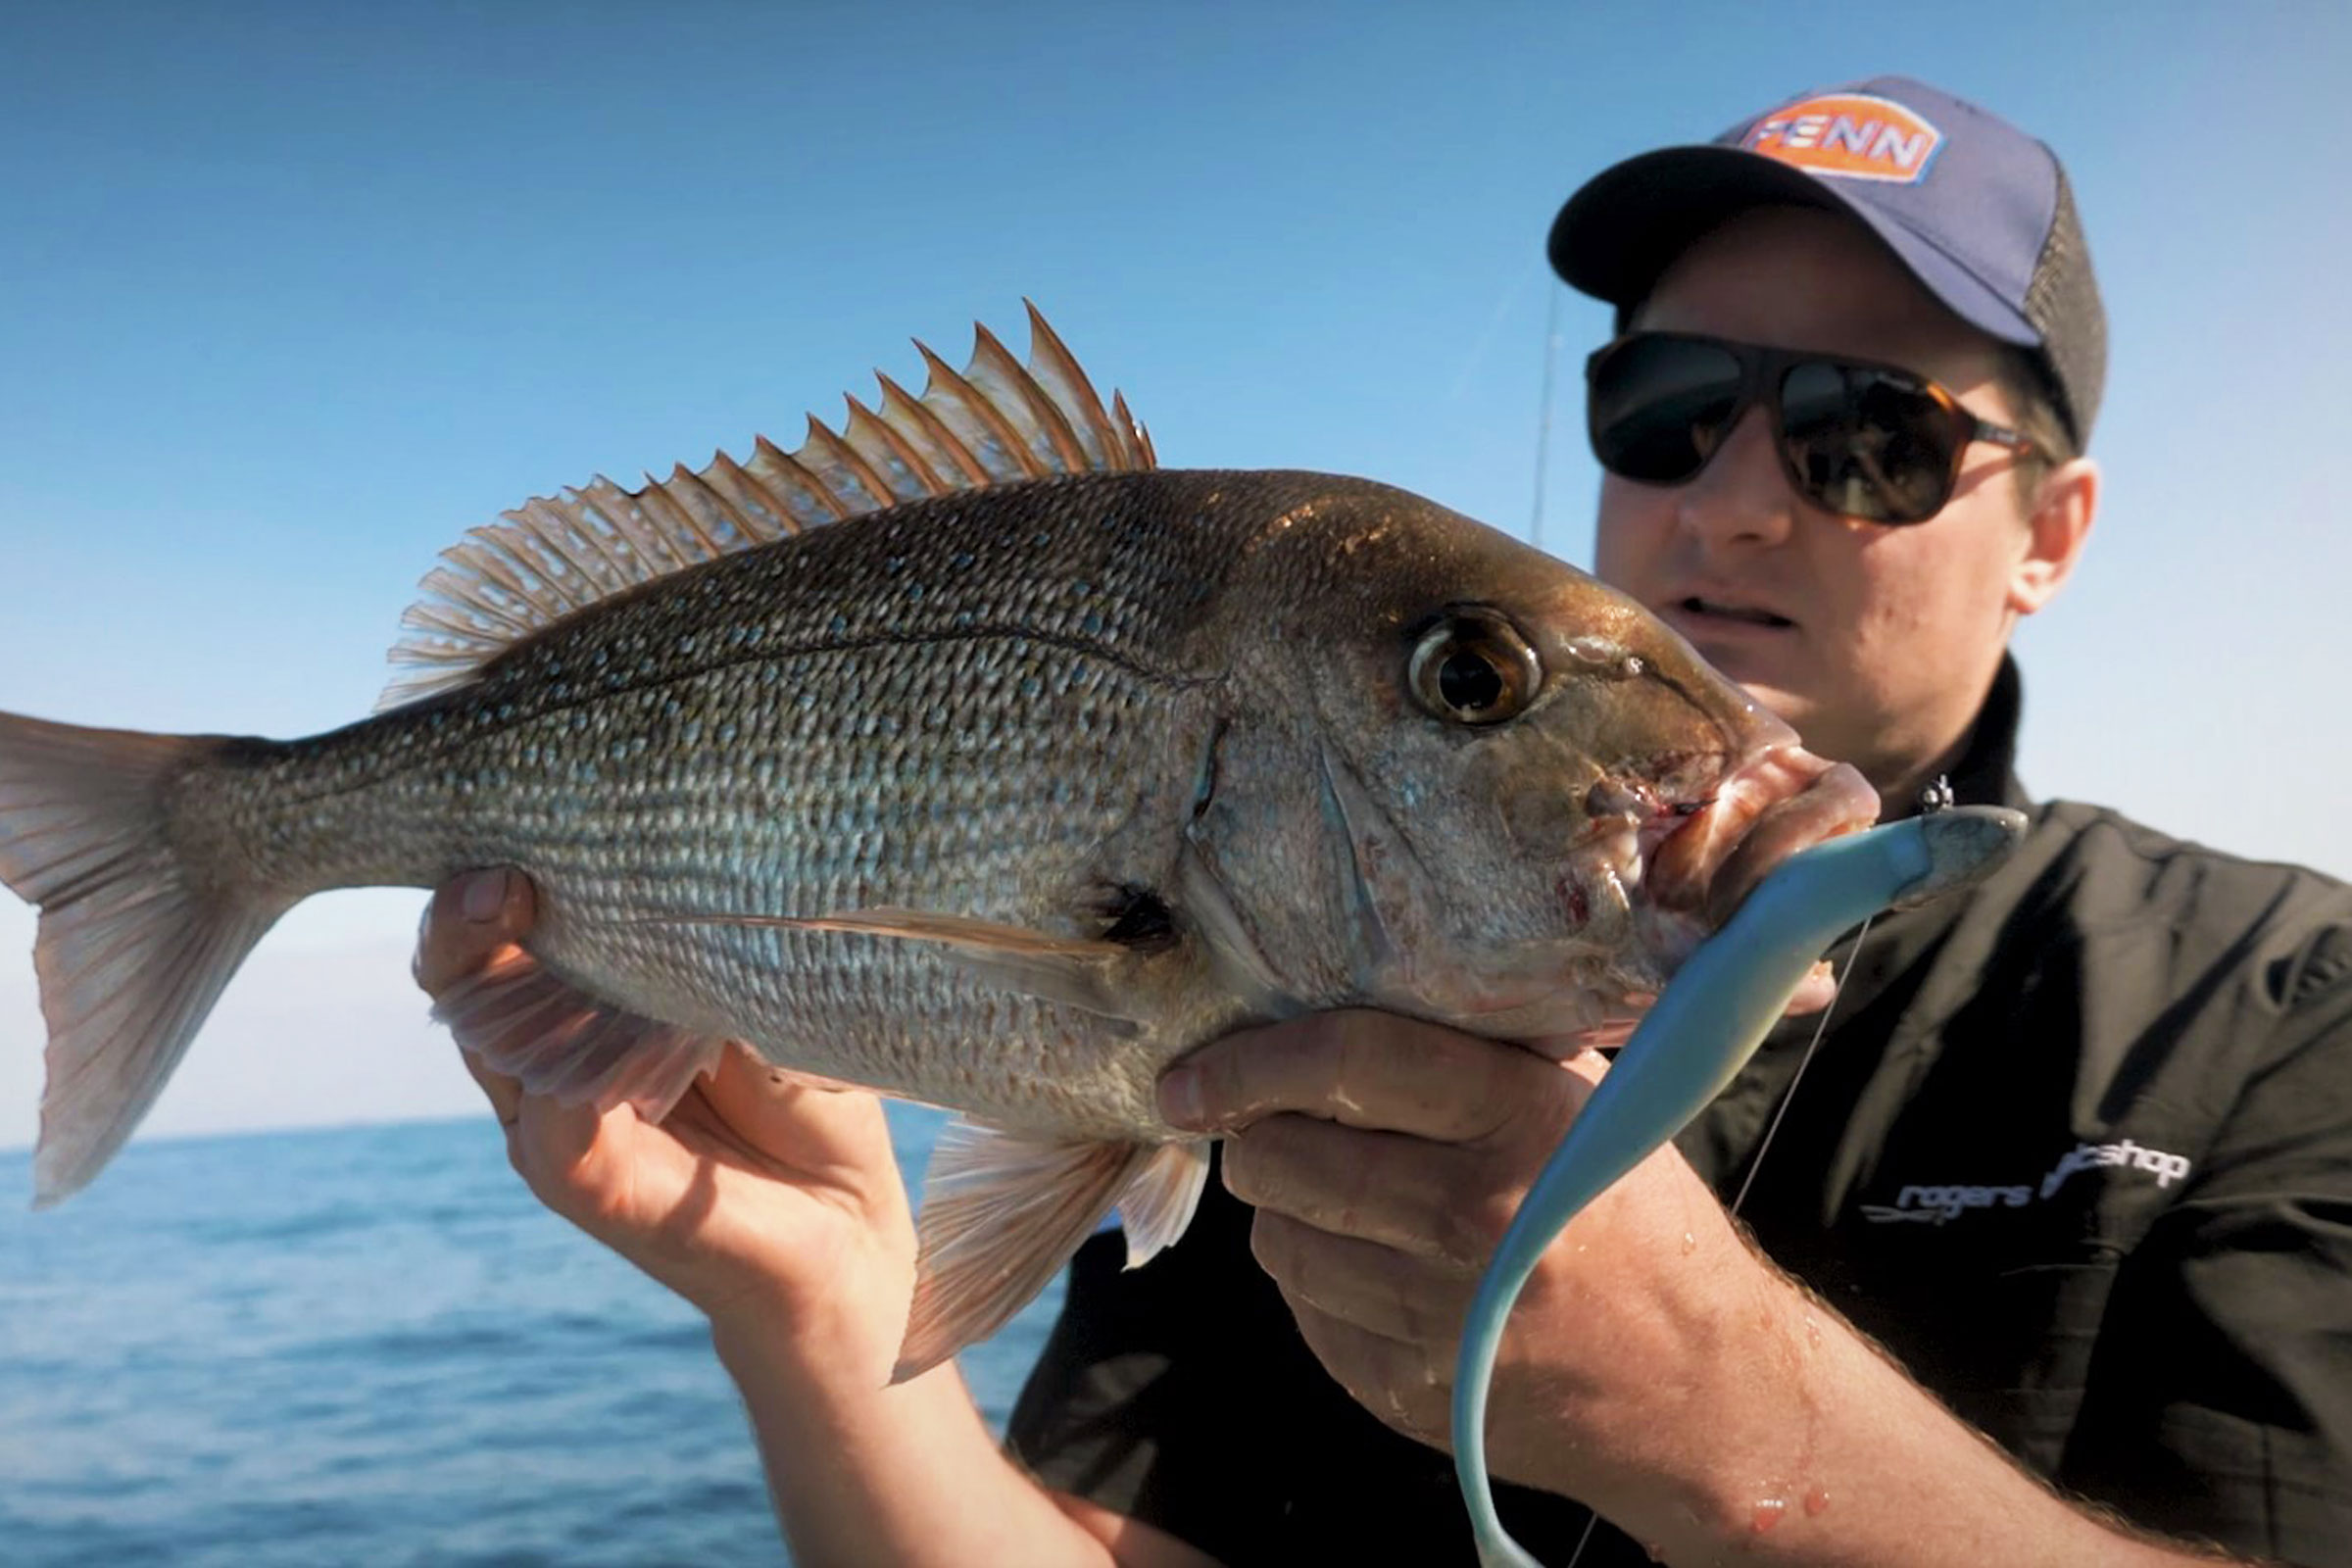 Fishing the Mighty Mokes with Yamaha School of Fish